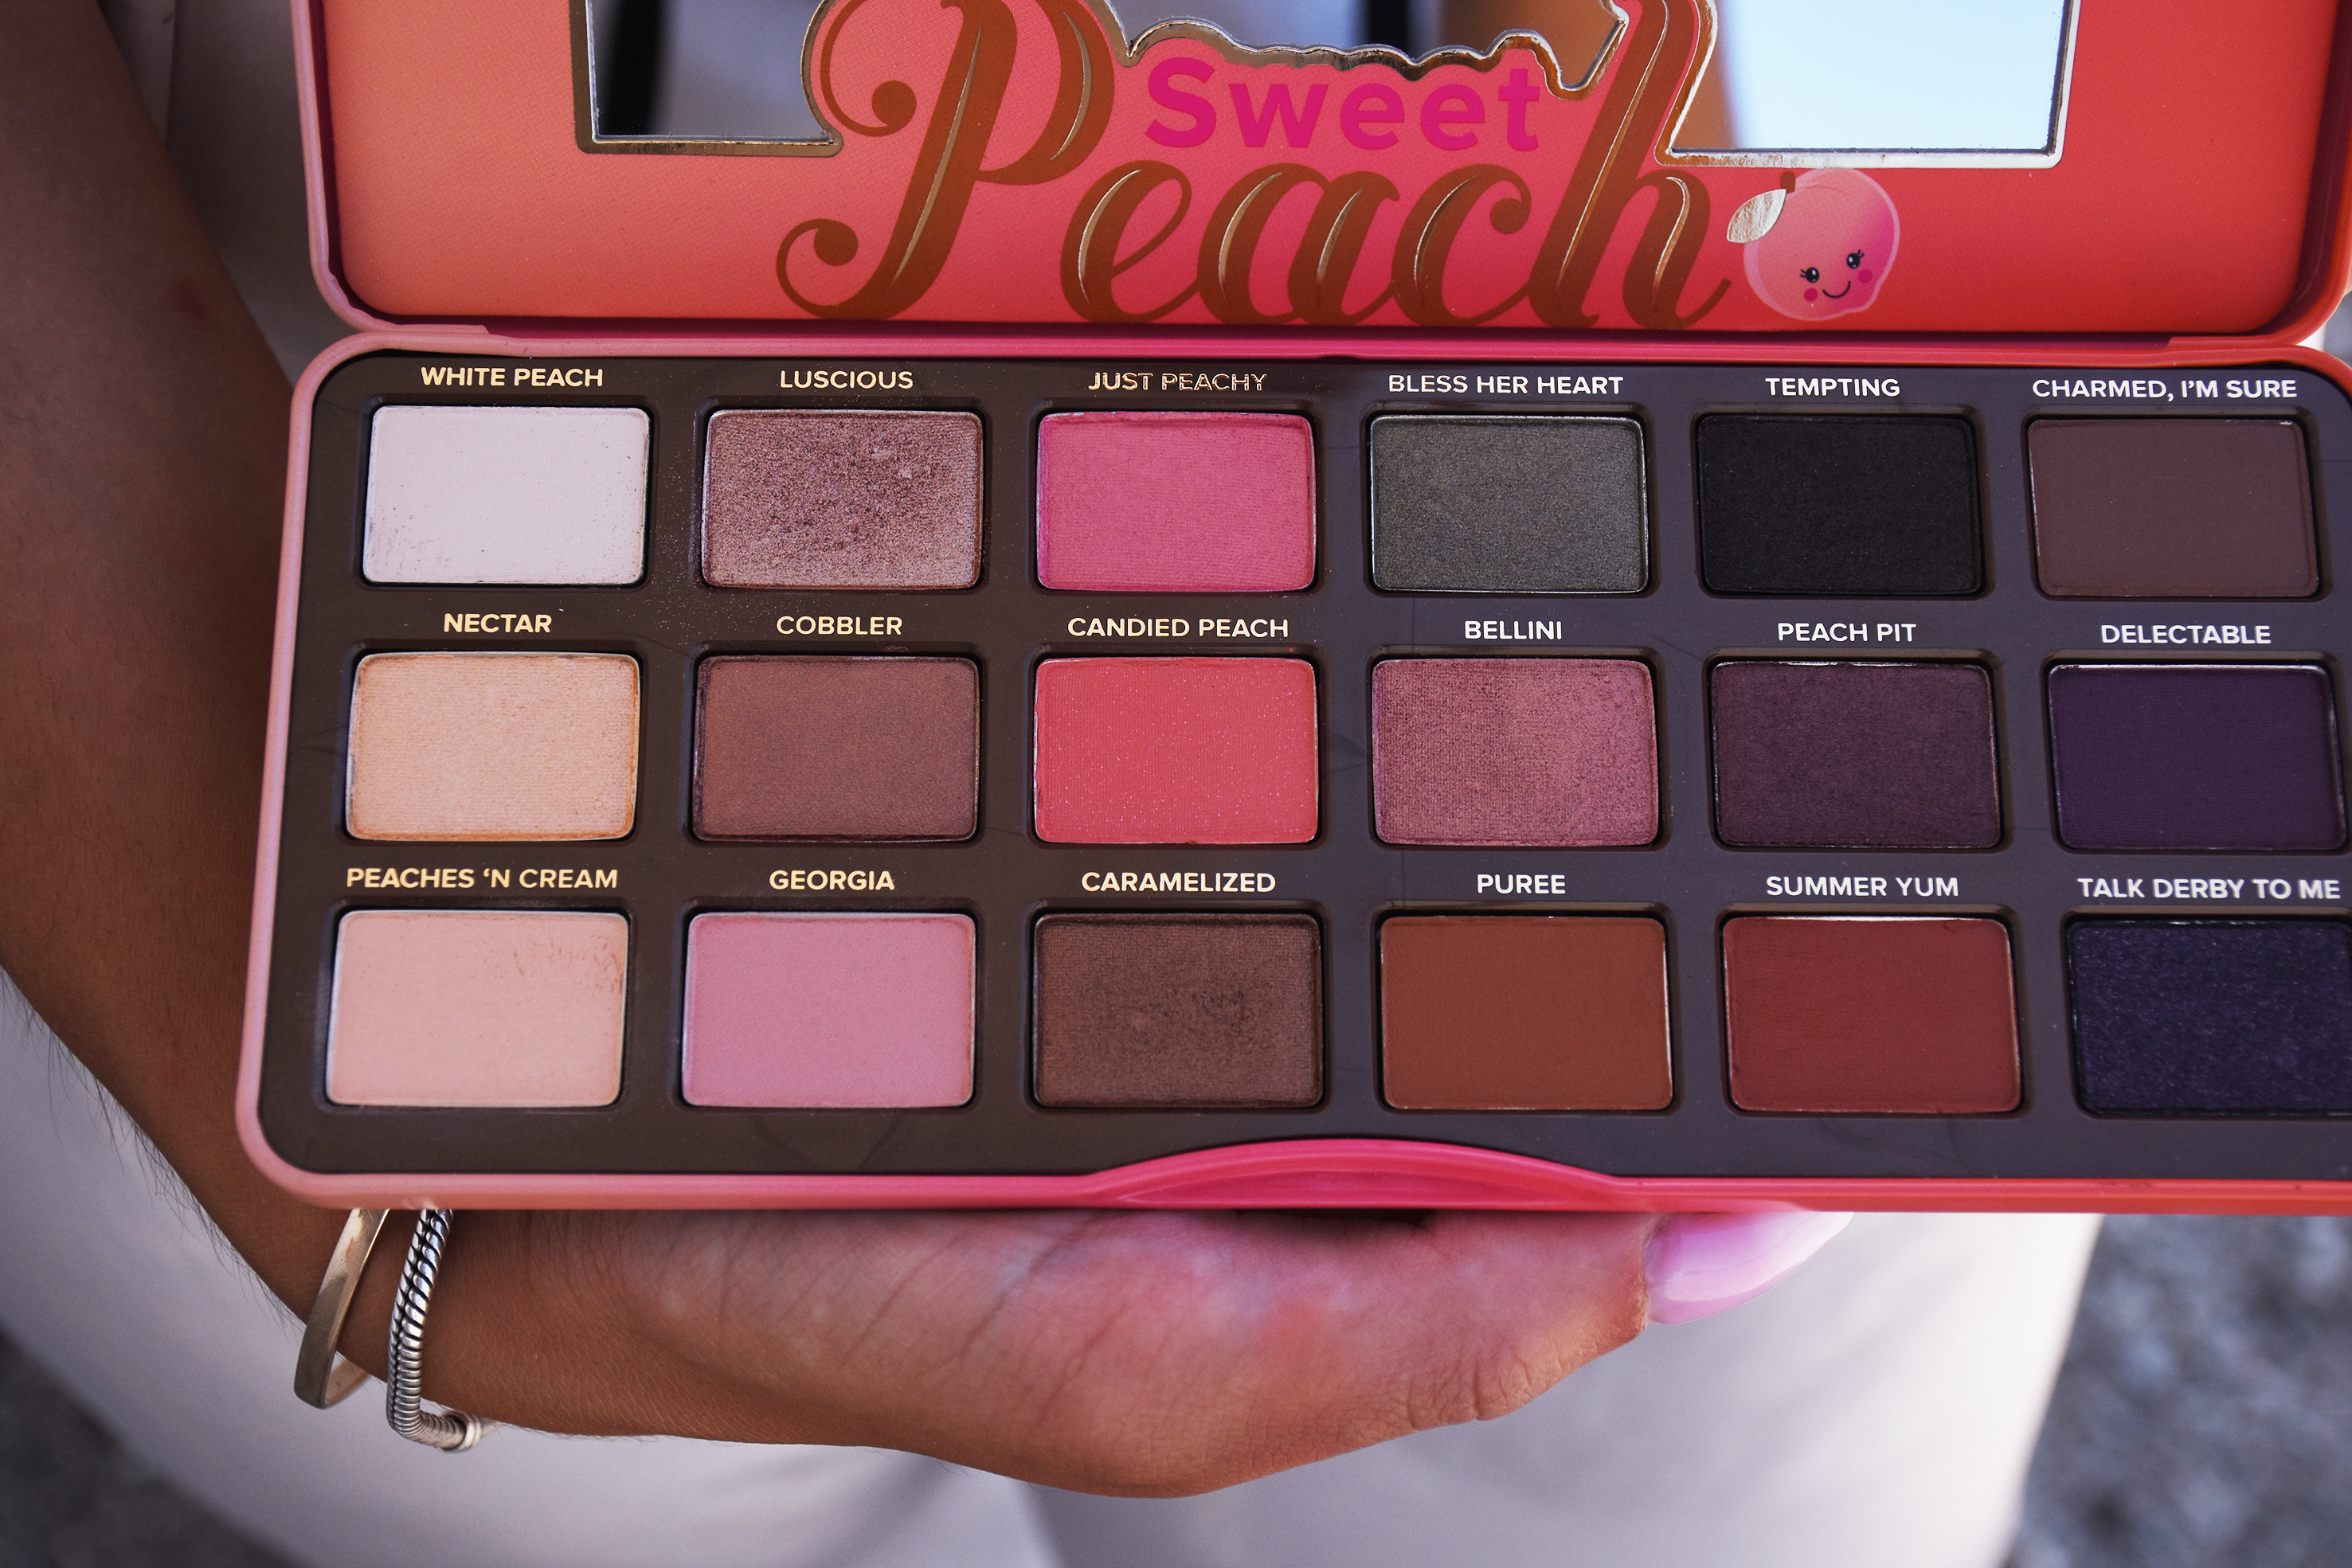 review-too faced sweet peach palette all colors